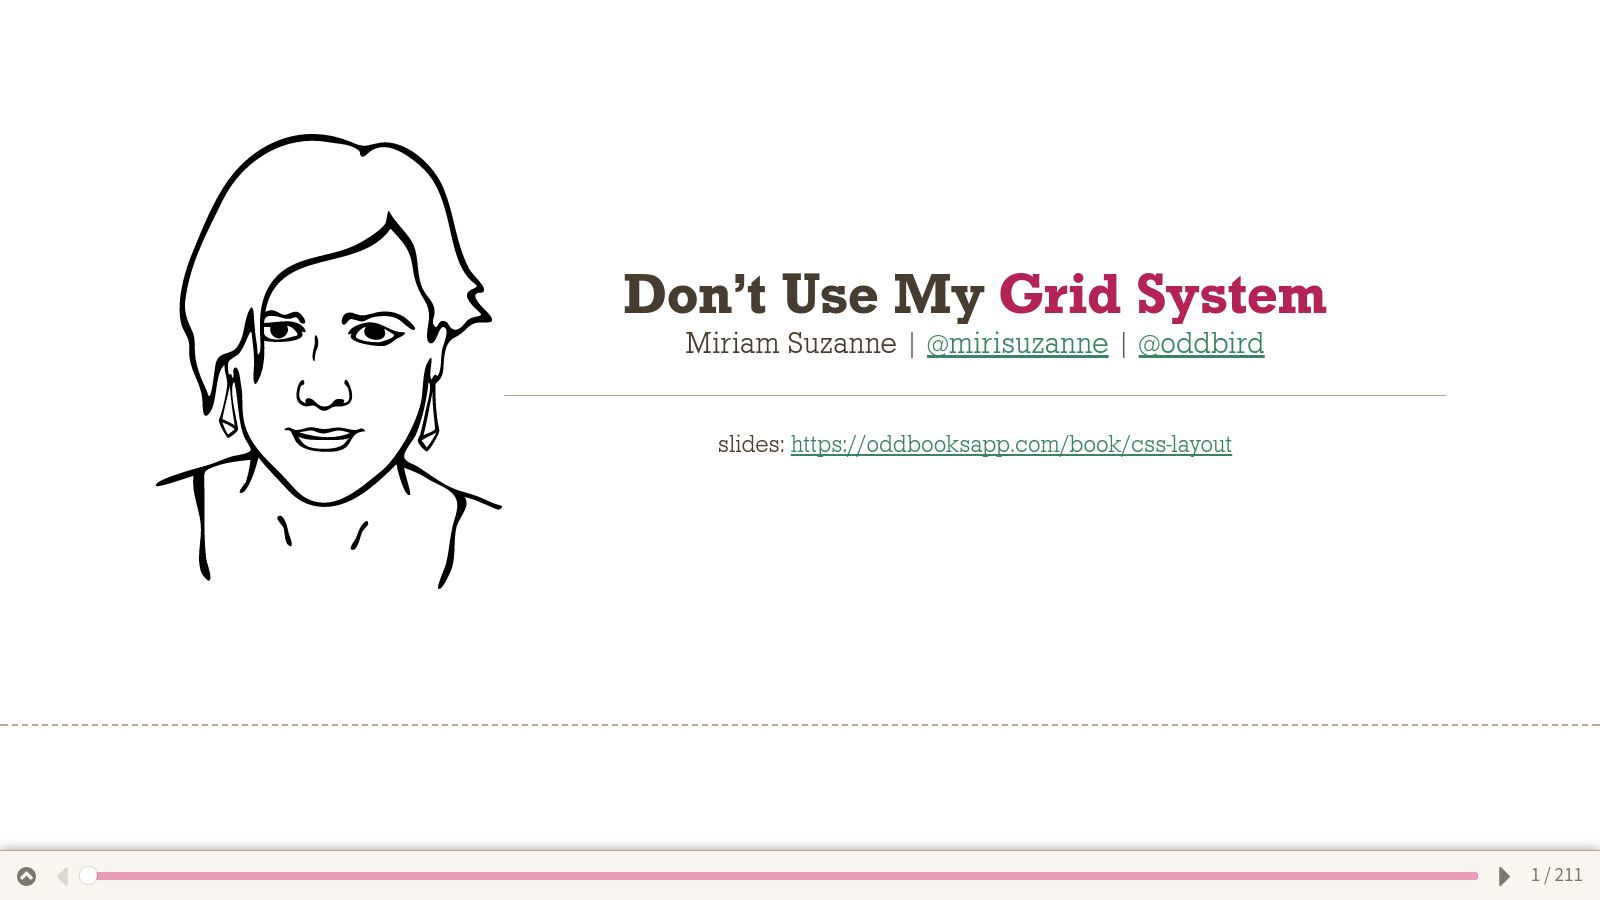 Don't Use My Grid System (or any others)